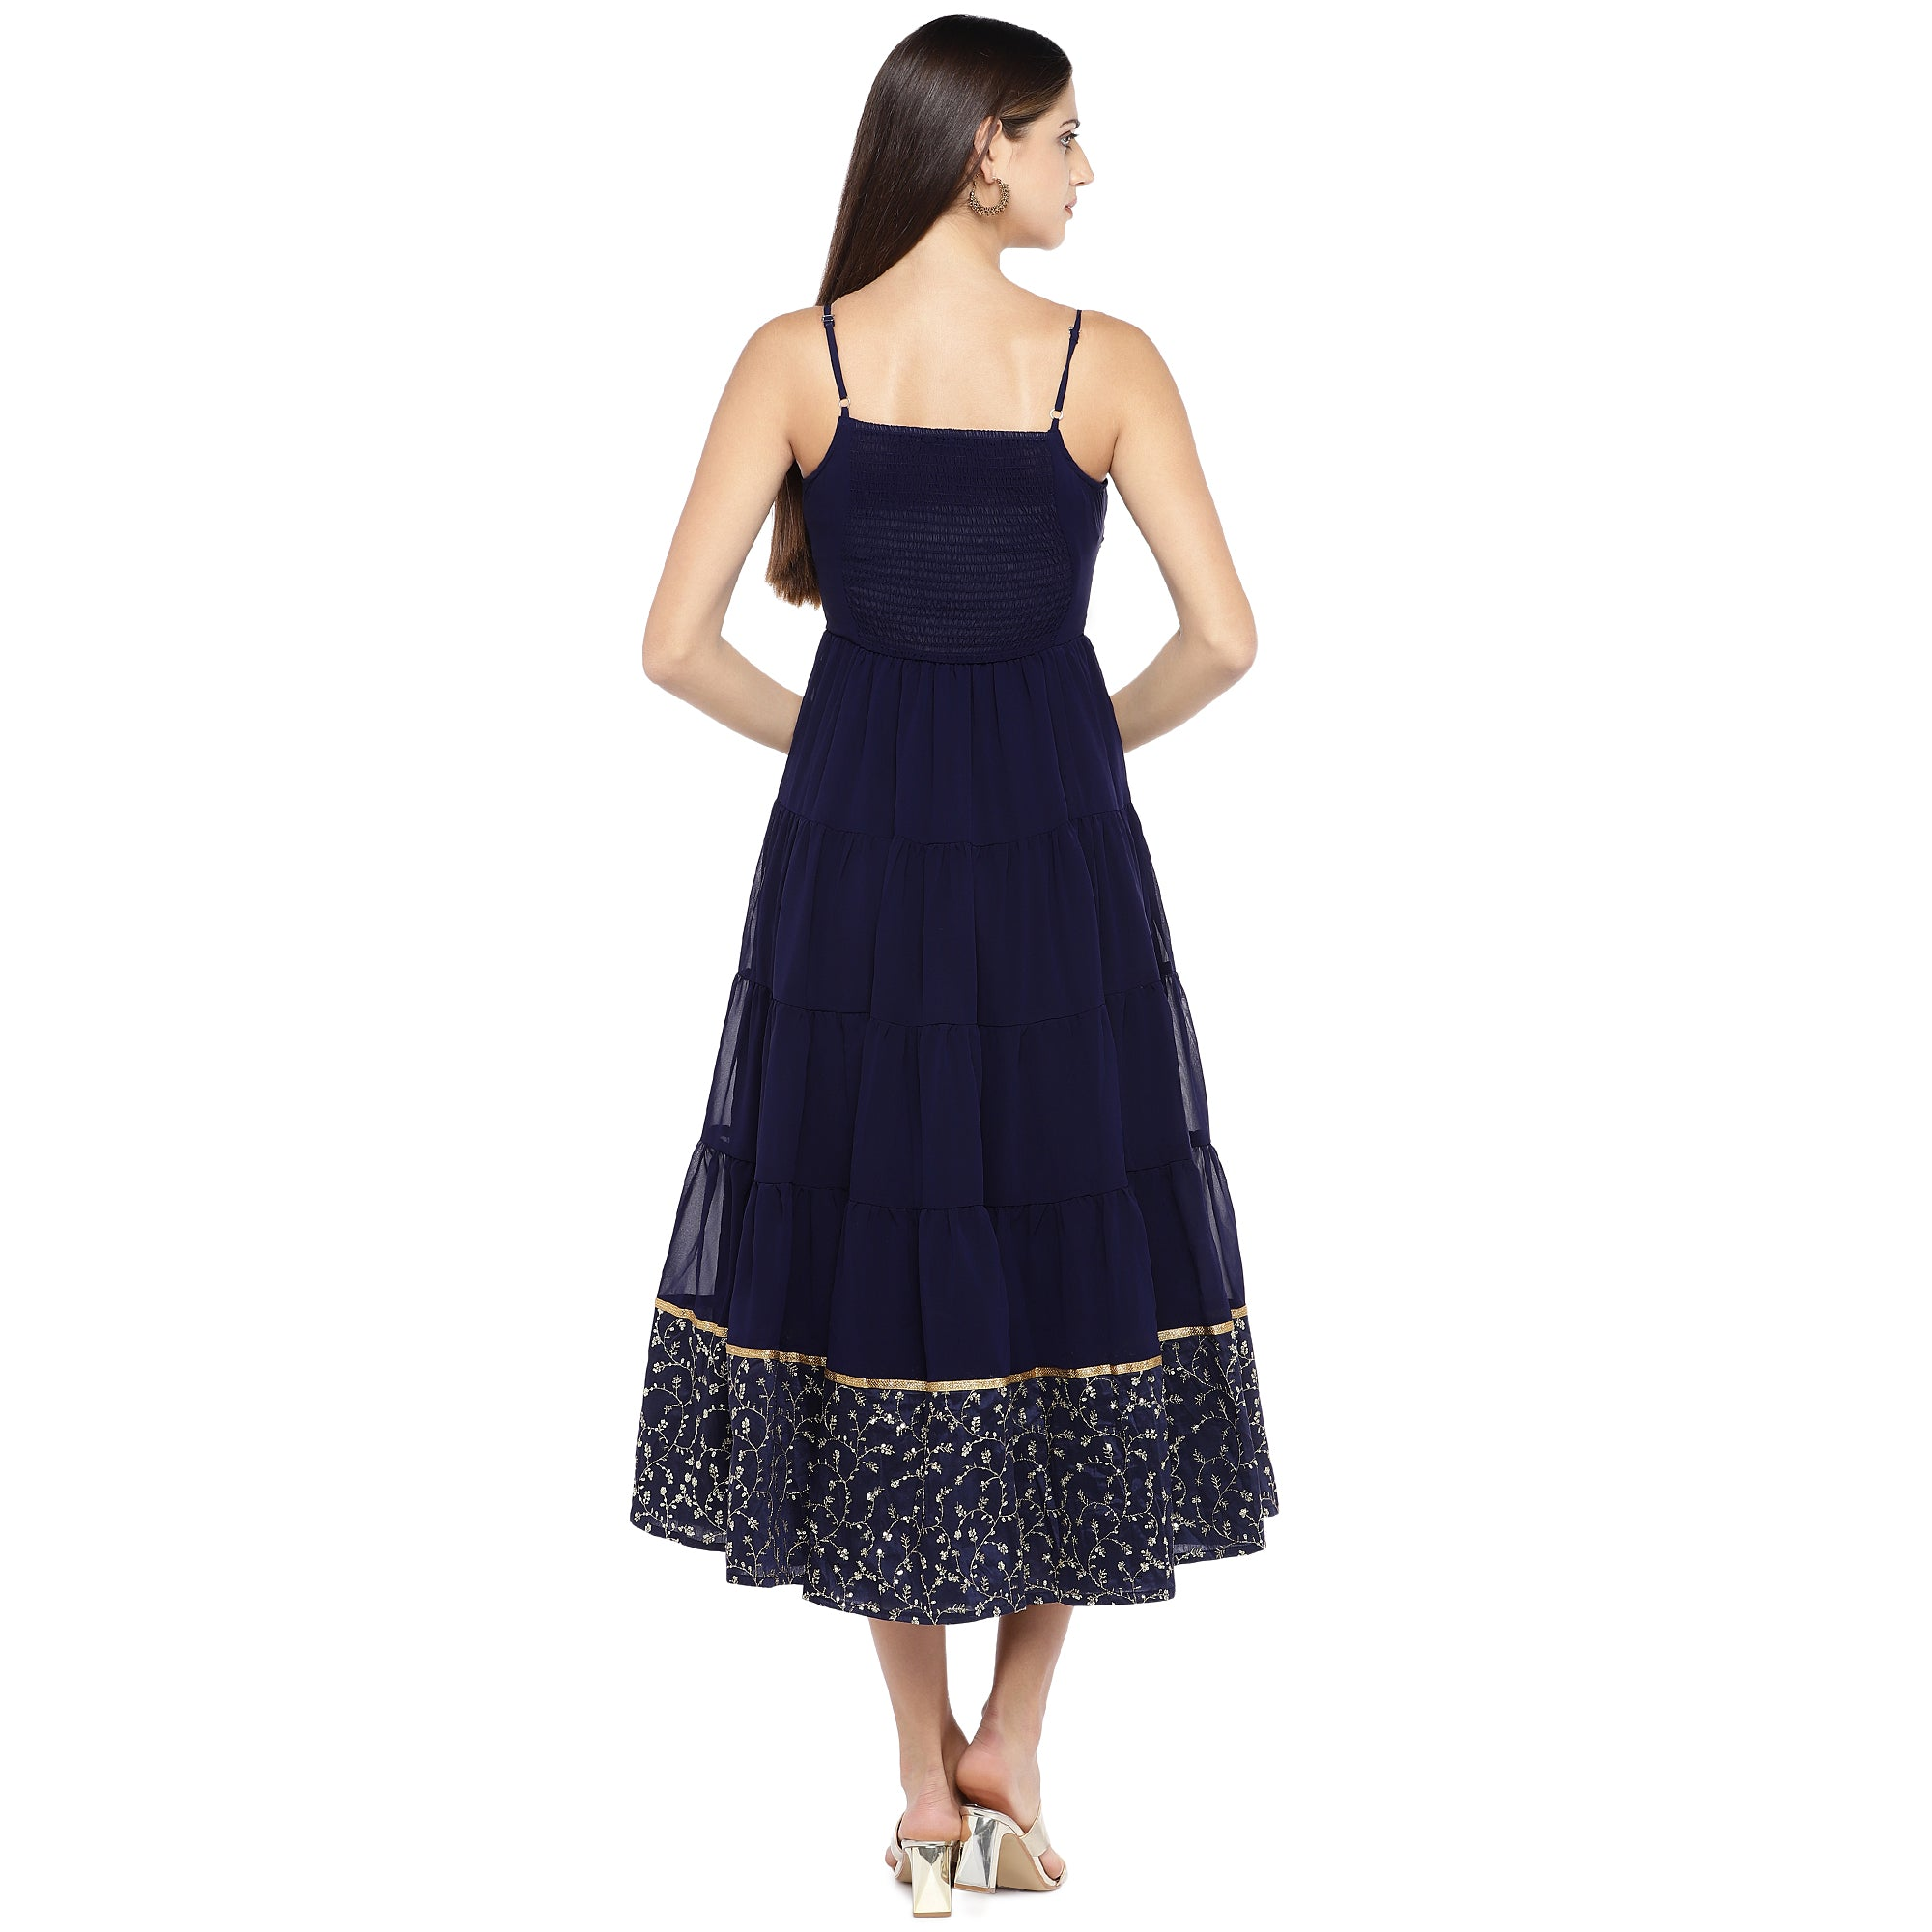 Navy Blue Embroidered Empire Dress-3